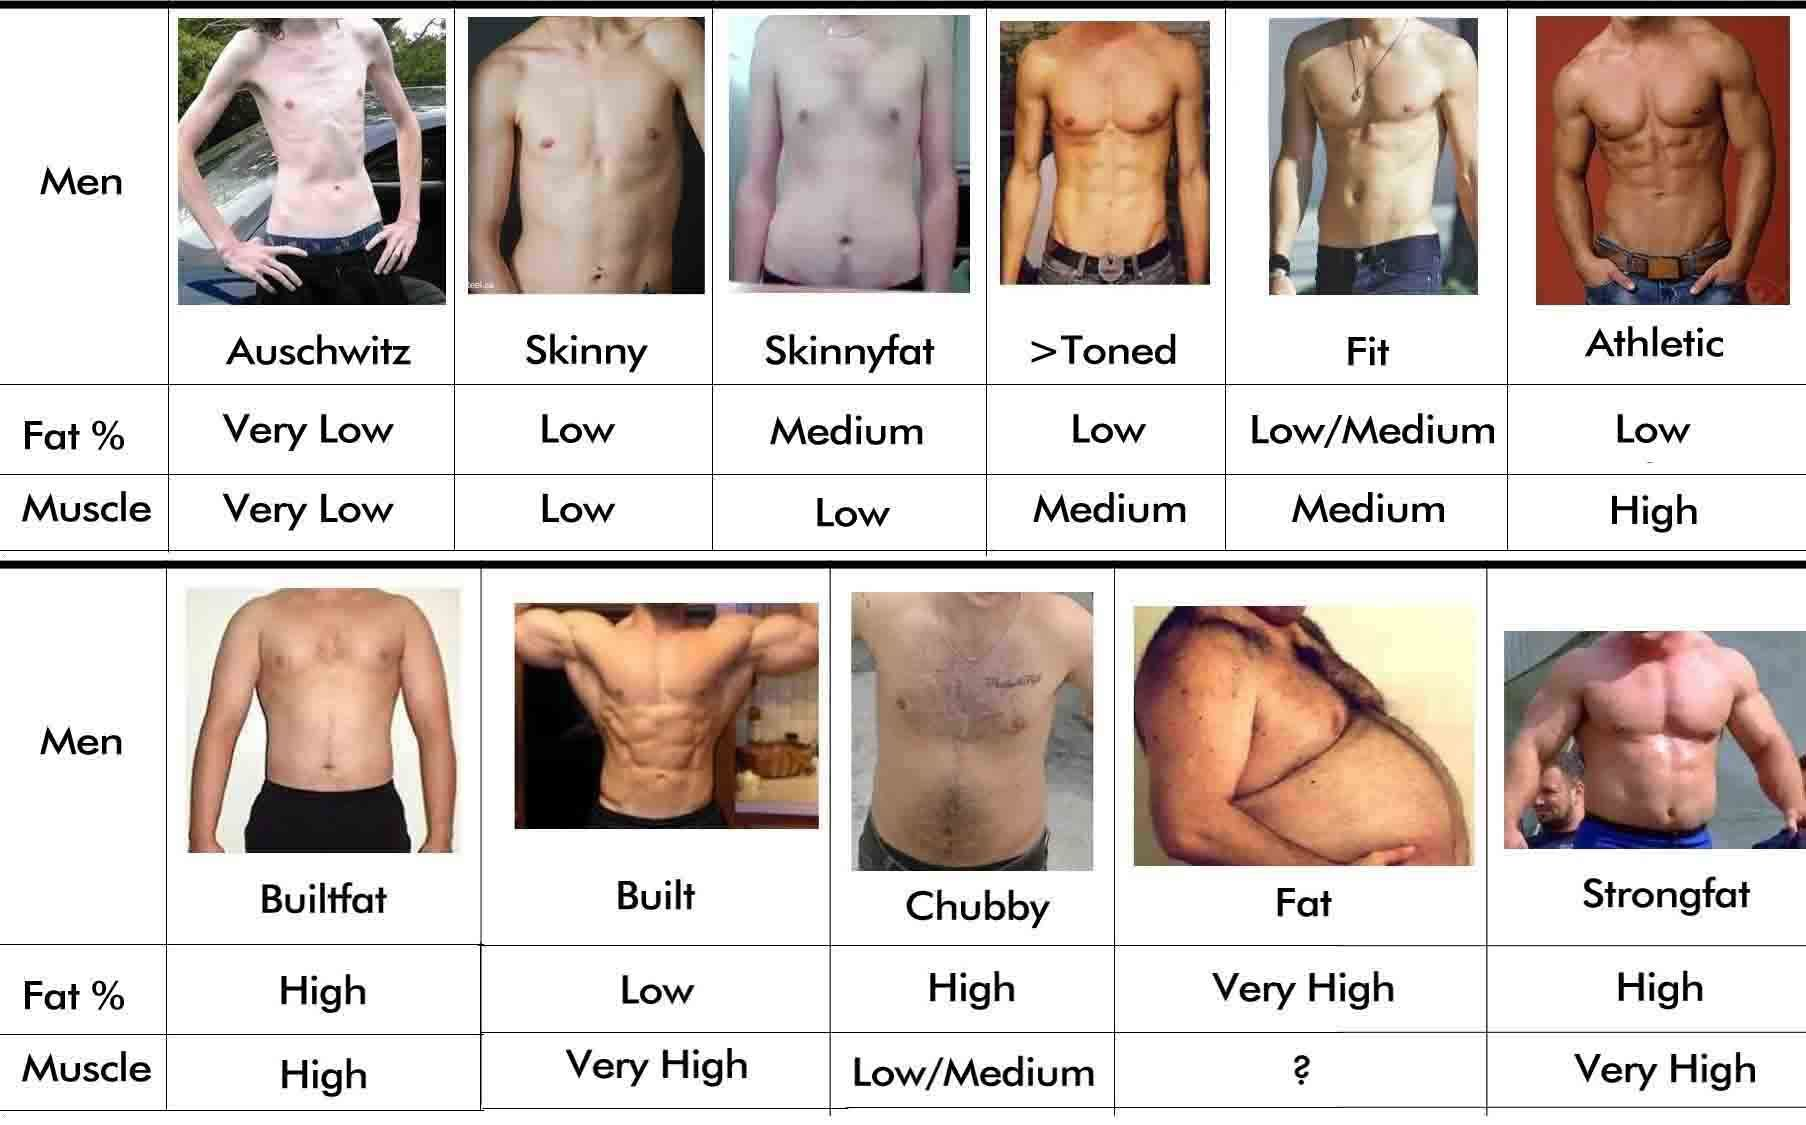 40 best ideas about Body Types on Pinterest | Male body, Types of ...